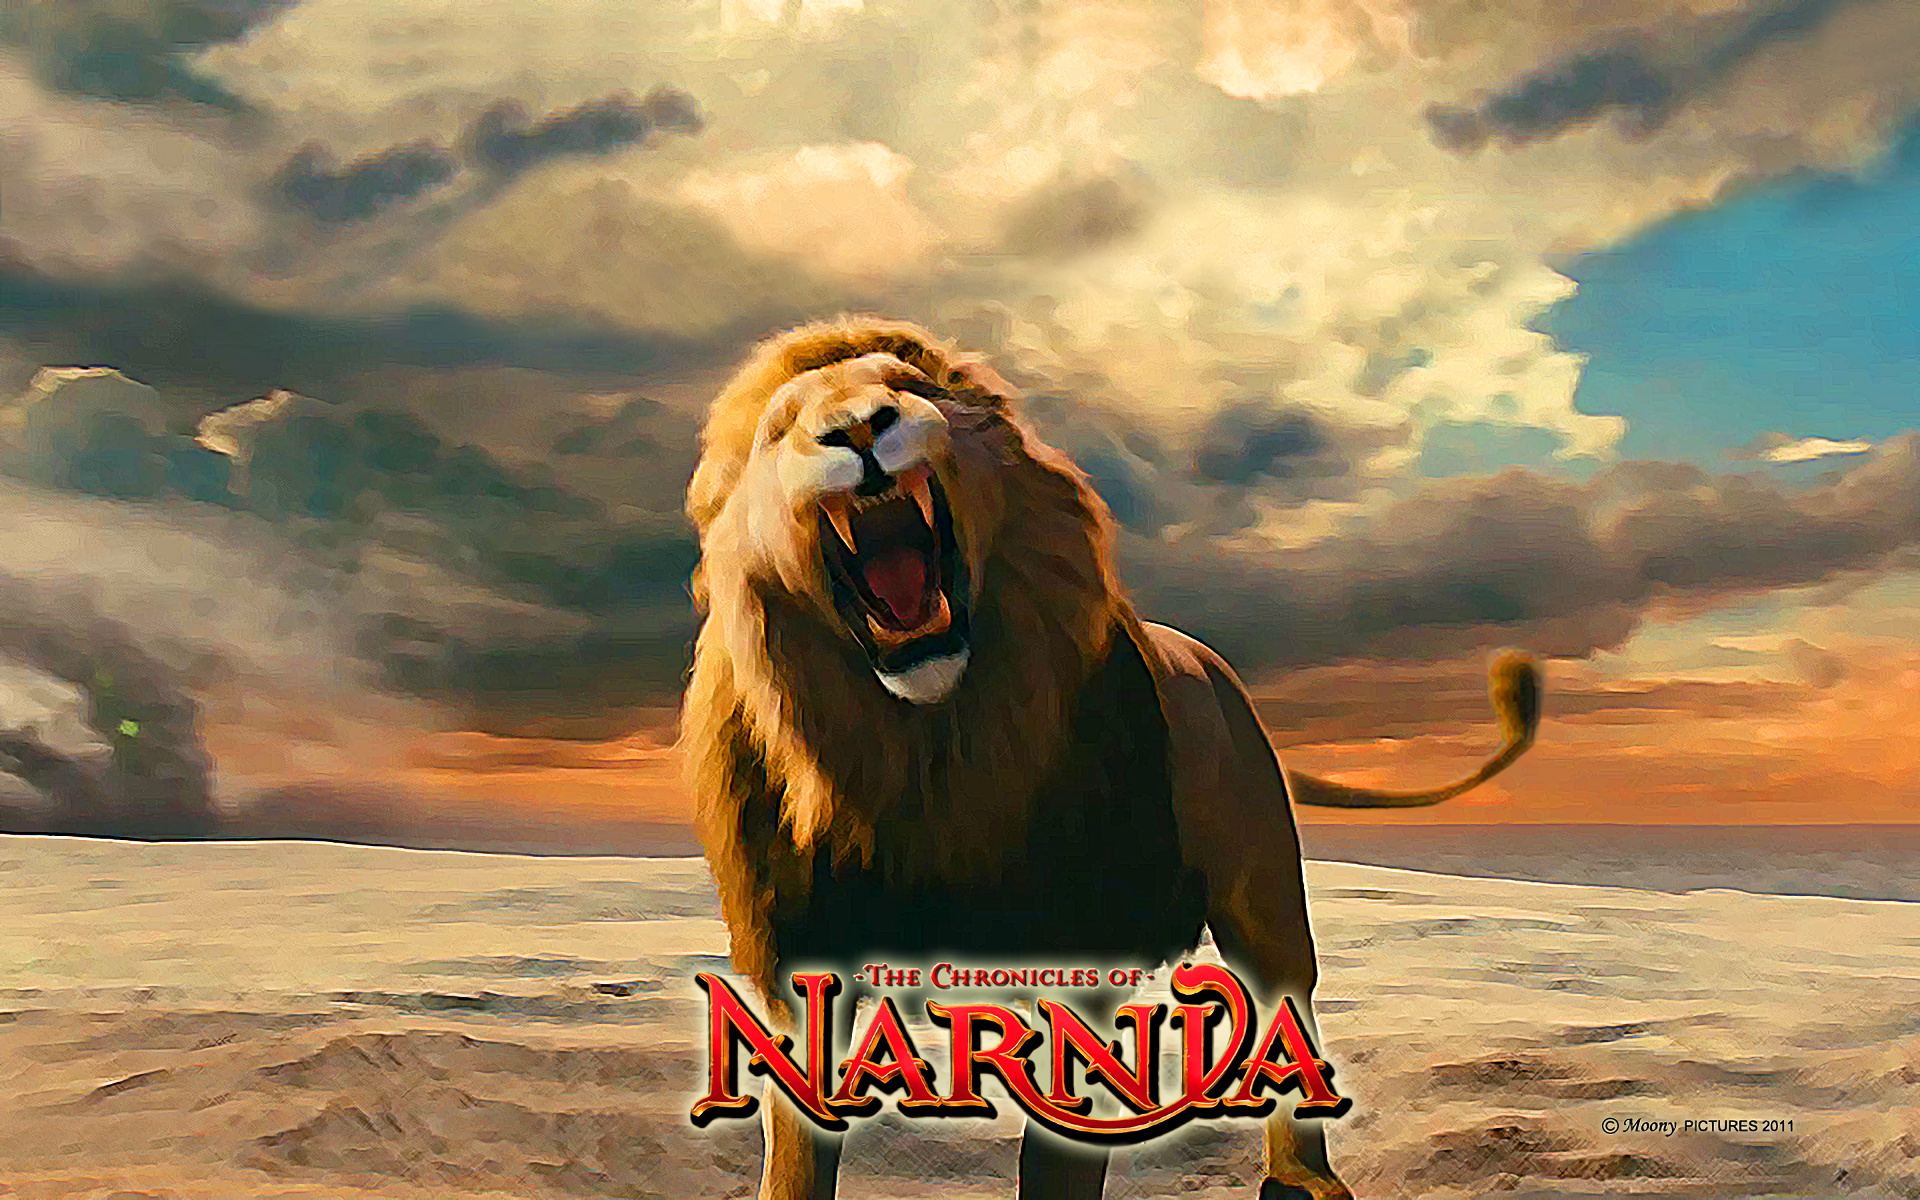 the chronicles of narnia: the lion, the witch and the wardrobe hd